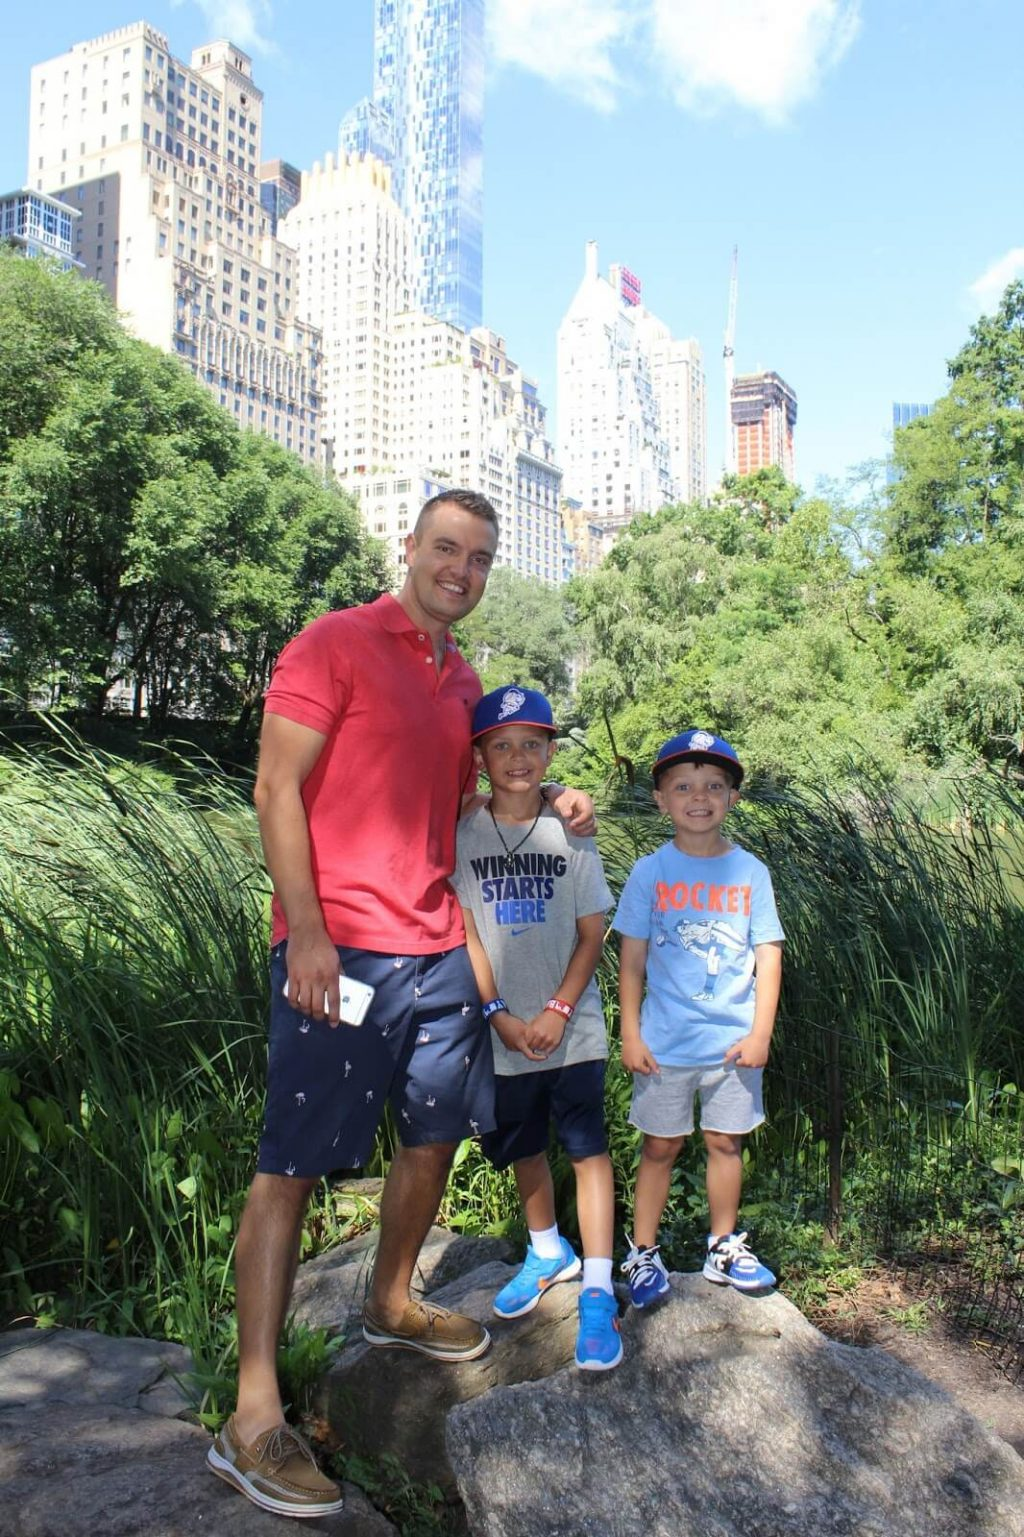 Visiting Central Park with family